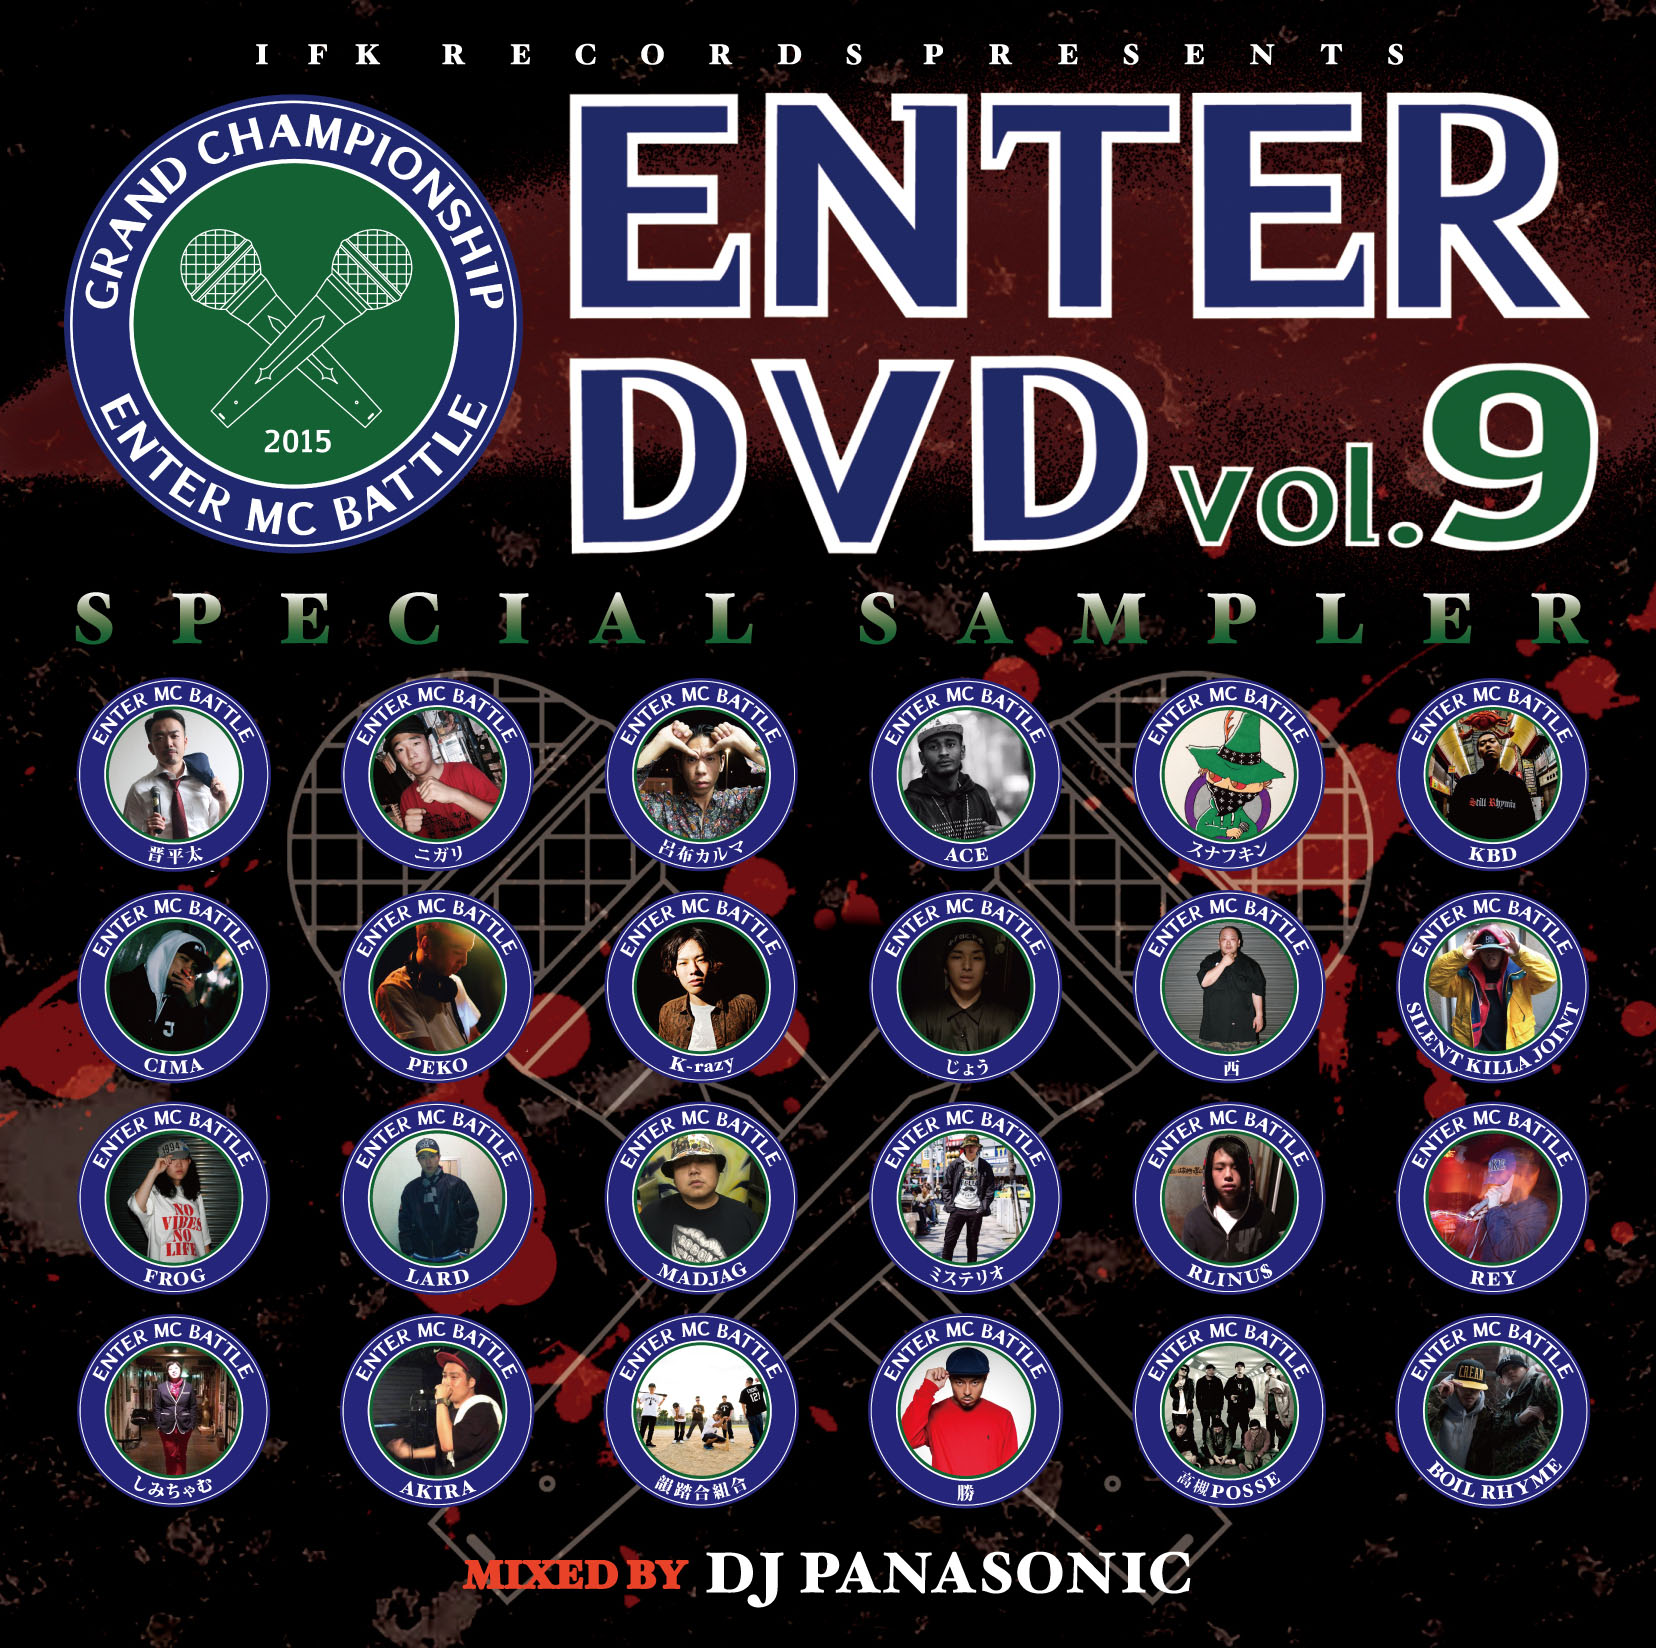 ENTER DVD 9 SAMPLER_3_120x120_omote.jpg